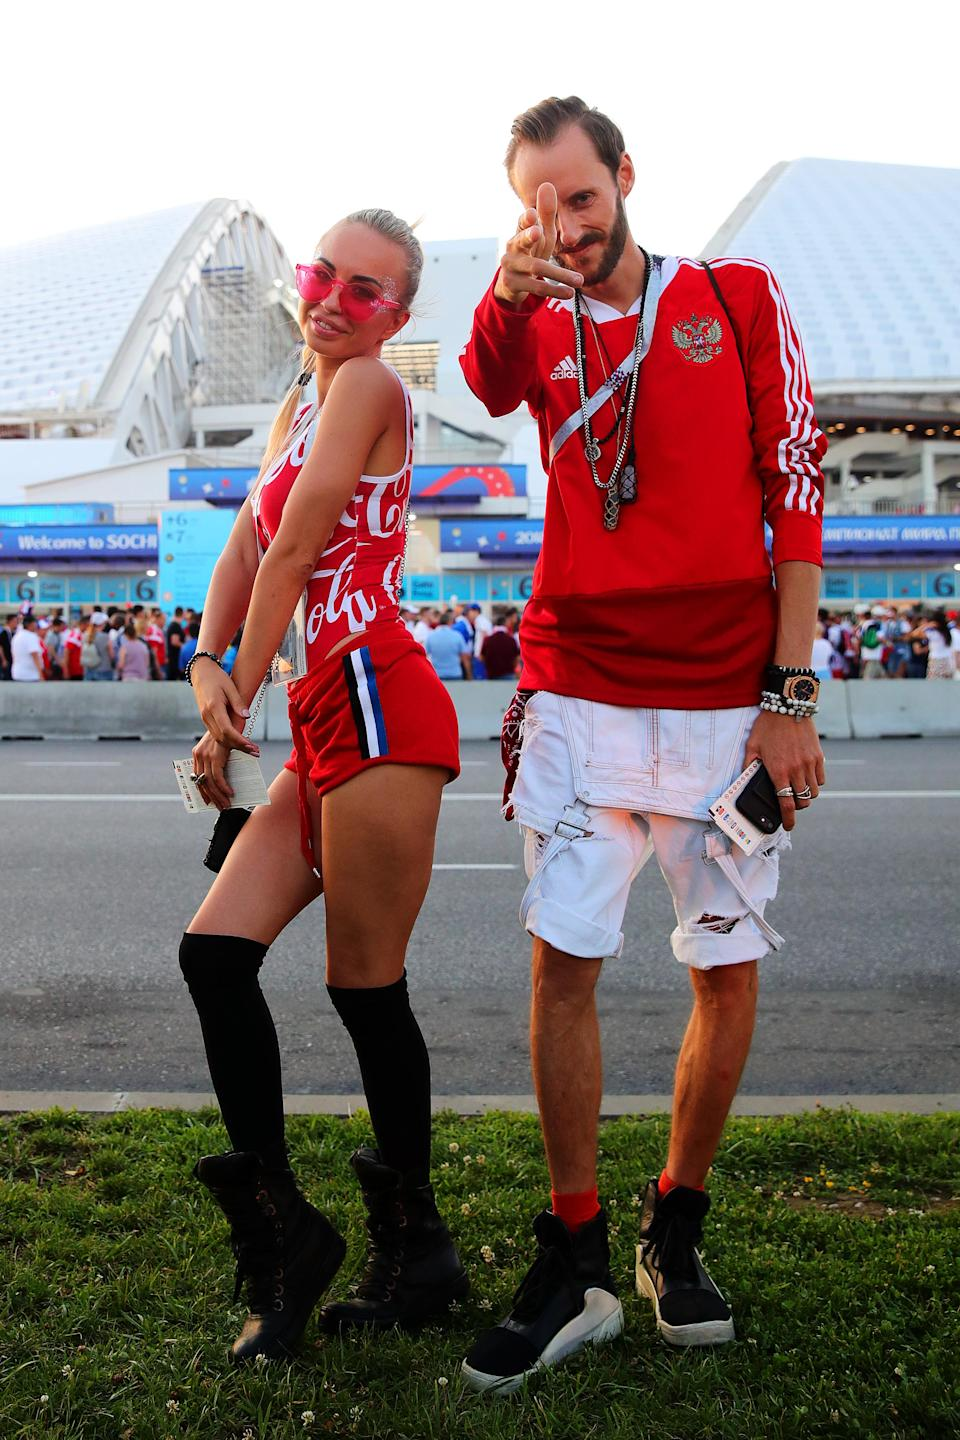 <p>Russia fans look on outside the stadium ahead of the 2018 FIFA World Cup Russia Quarter Final match between Russia and Croatia at Fisht Stadium on July 7, 2018 in Sochi, Russia. (Photo by Chris Brunskill/Fantasista/Getty Images) </p>